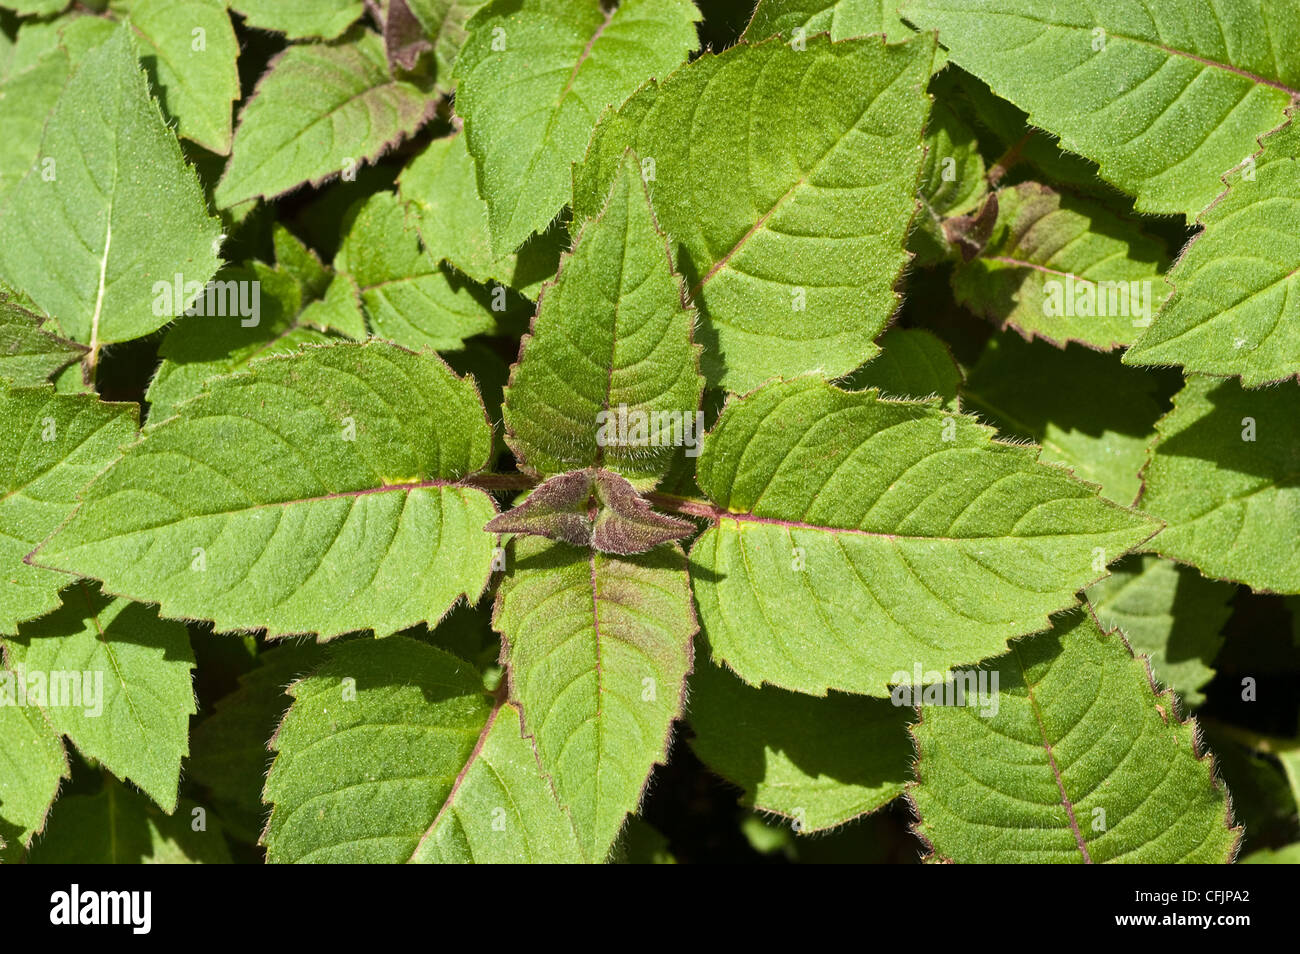 Green, young foliage, leaves of Bee Balm, Monarda didyma Stock Photo